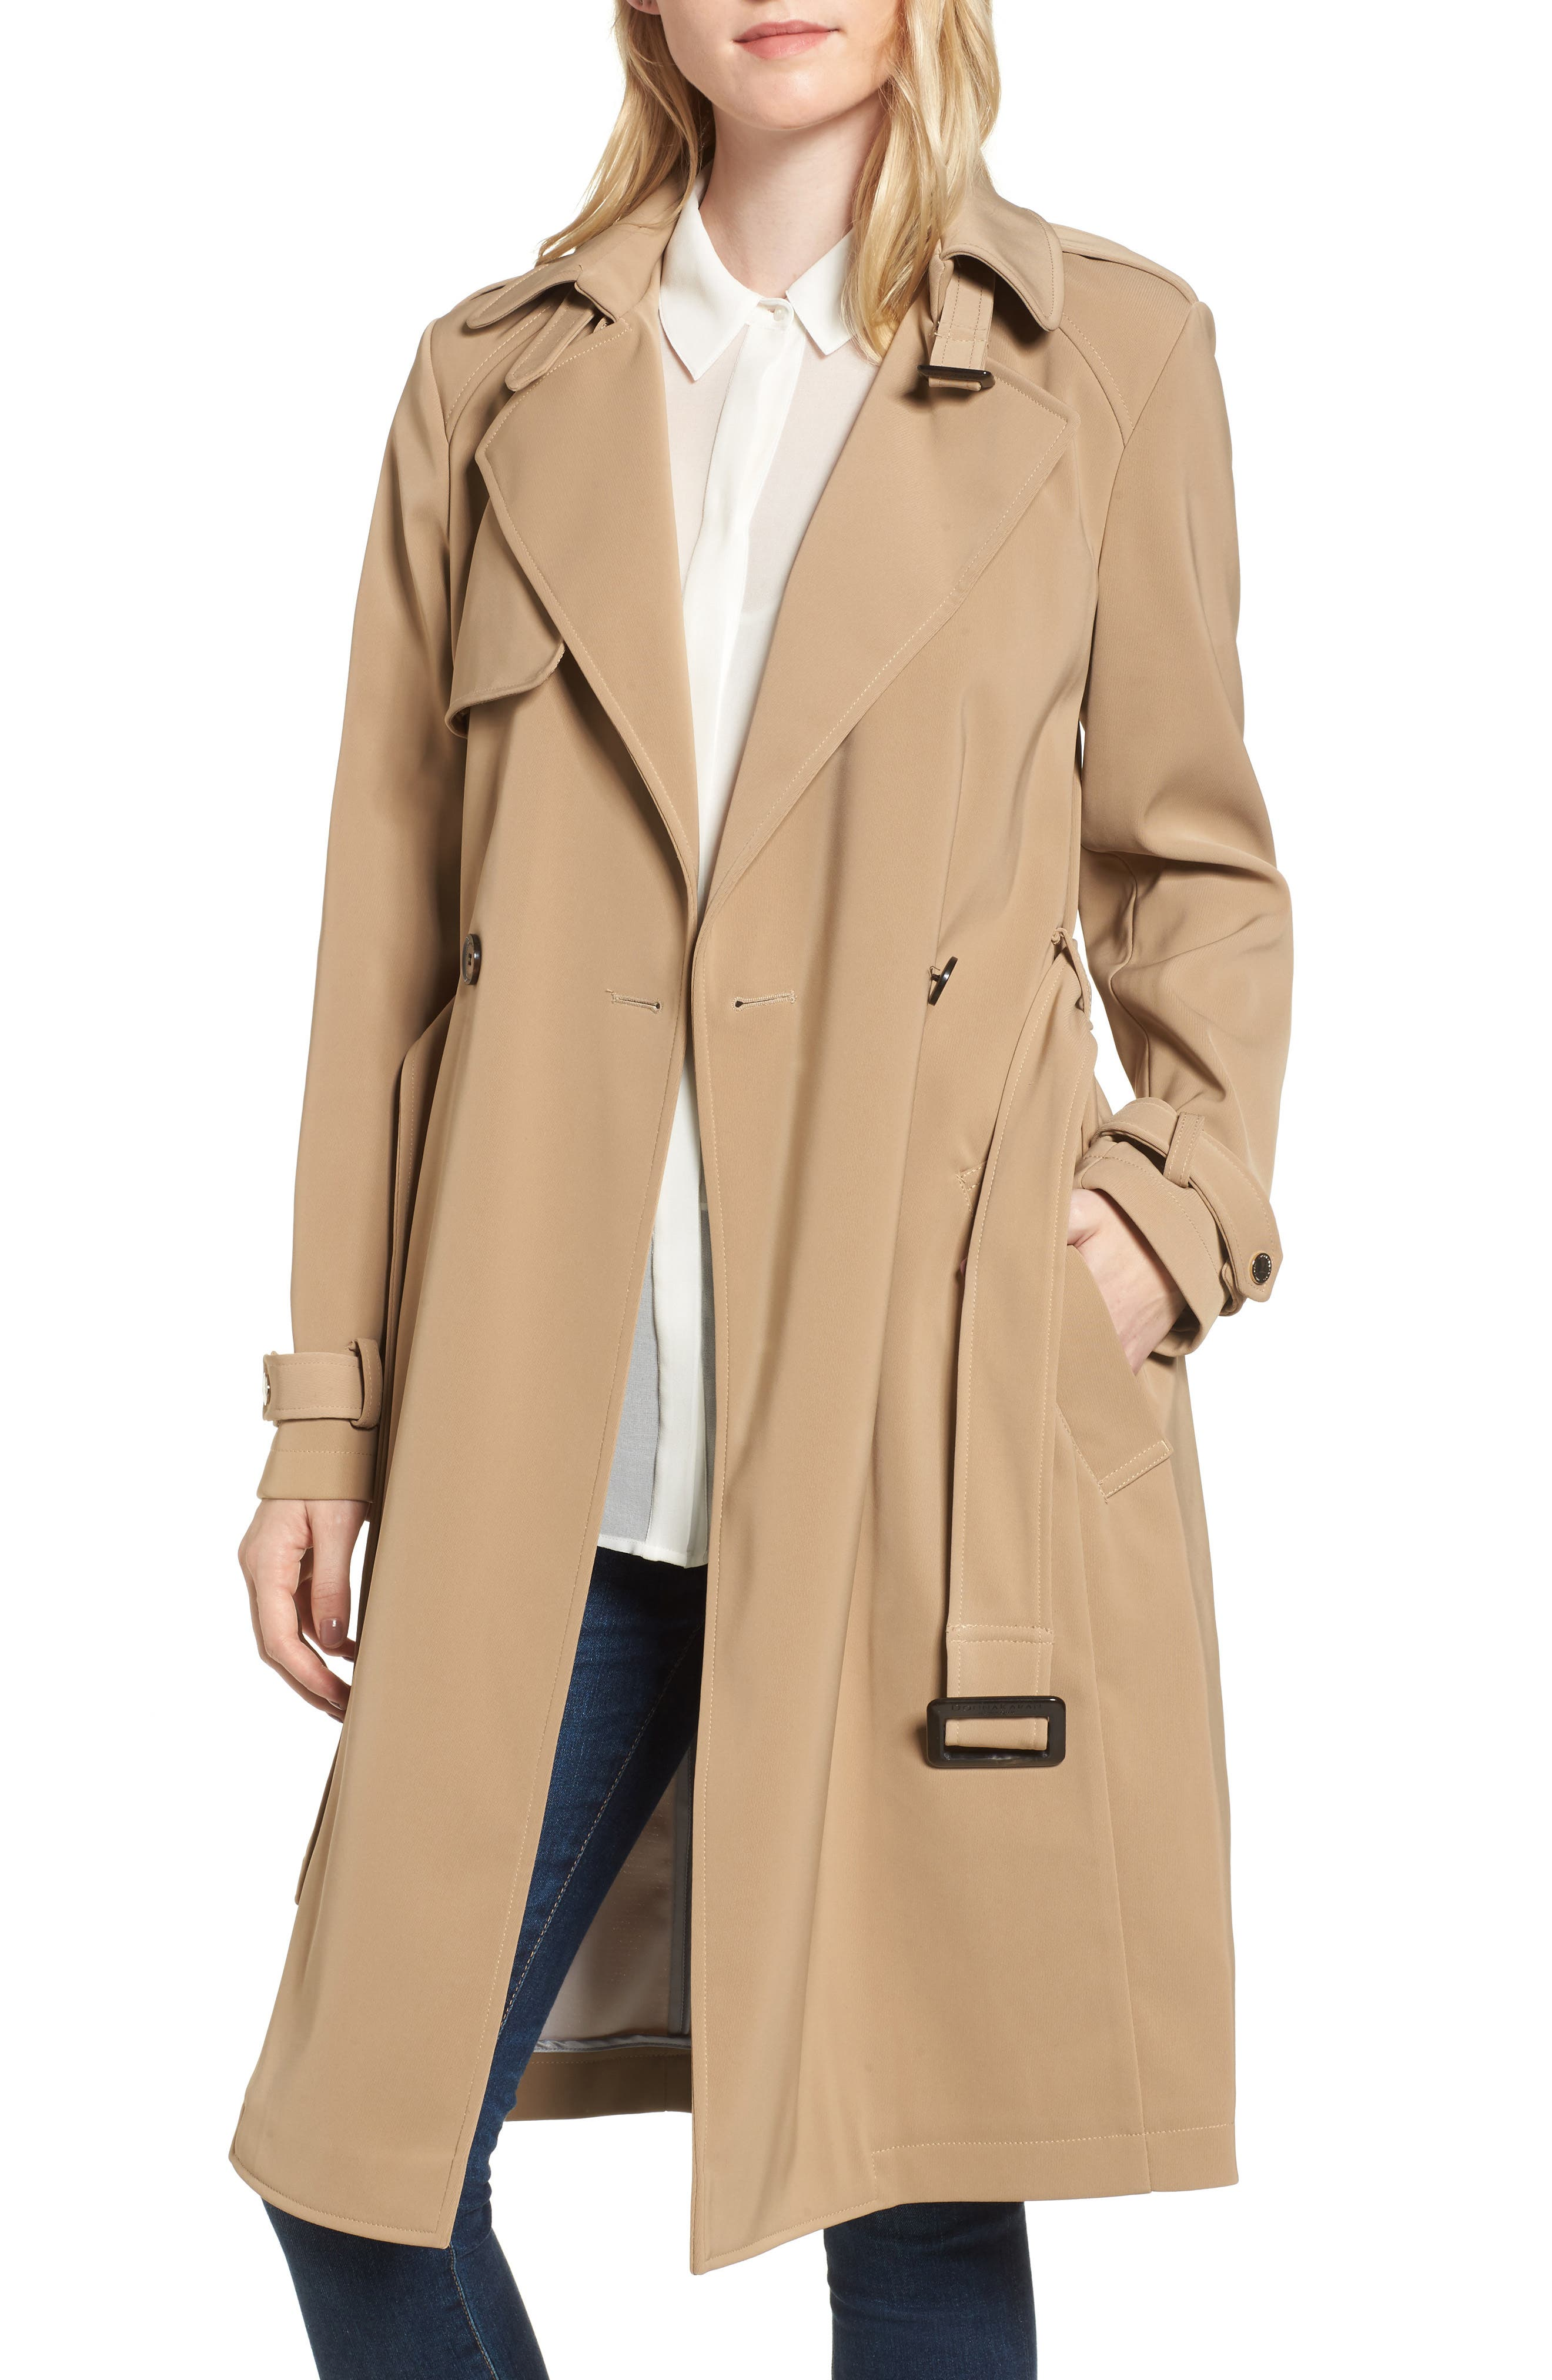 DKNY French Twill Water Resistant Trench Coat,                             Main thumbnail 2, color,